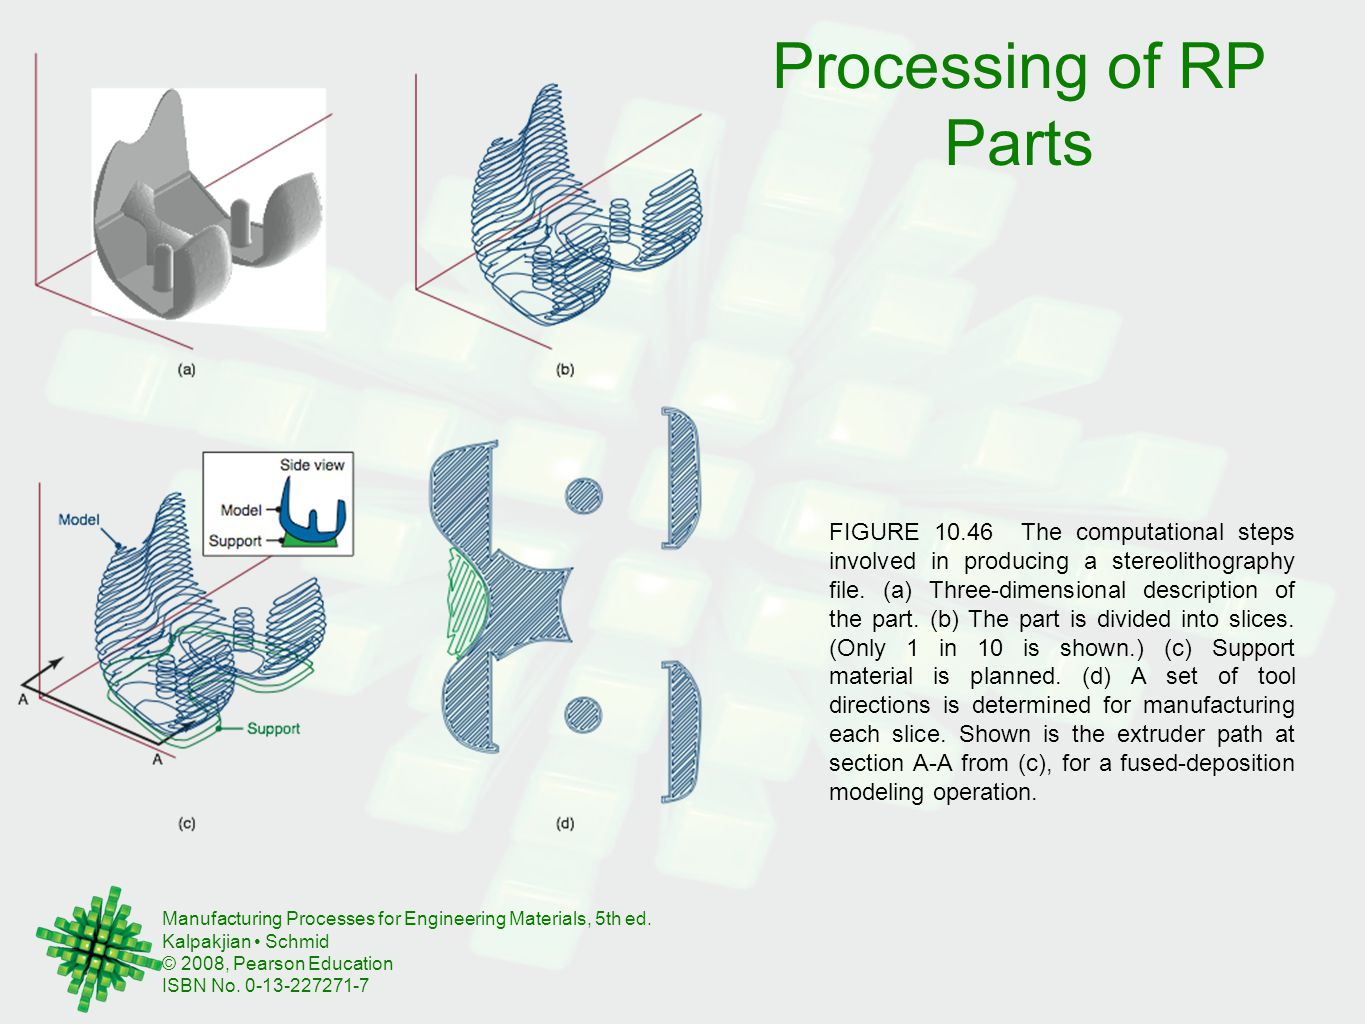 Manufacturing Processes for Engineering Materials, 5th ed.